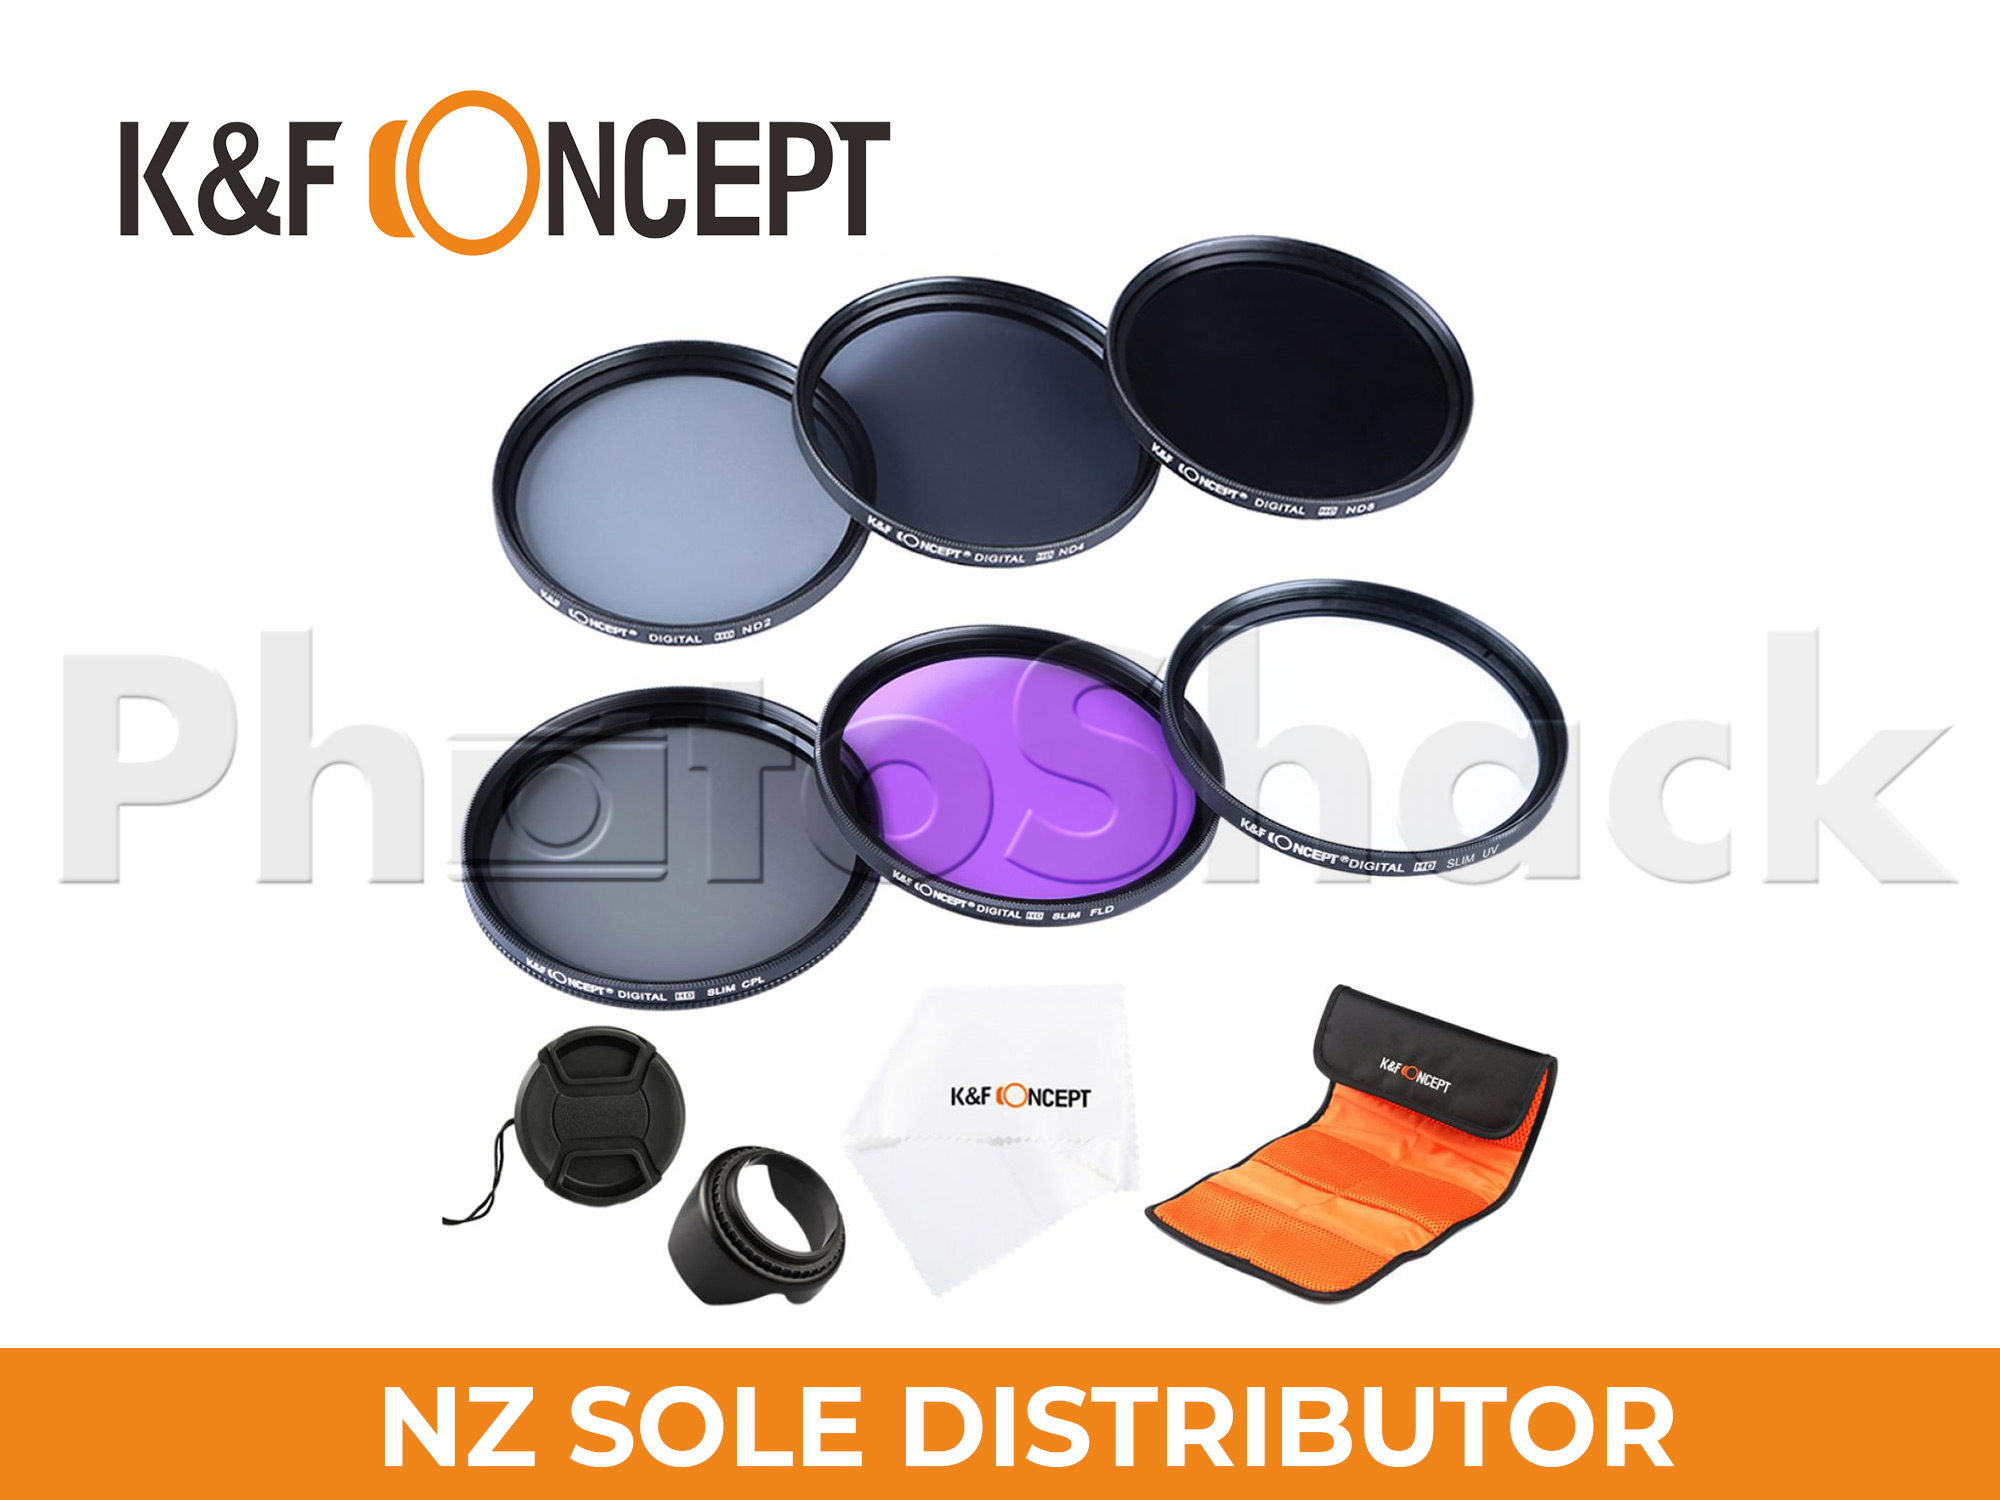 Filter Set (UV, CPL, FLD, ND2, ND4, ND8) - K&F Concept